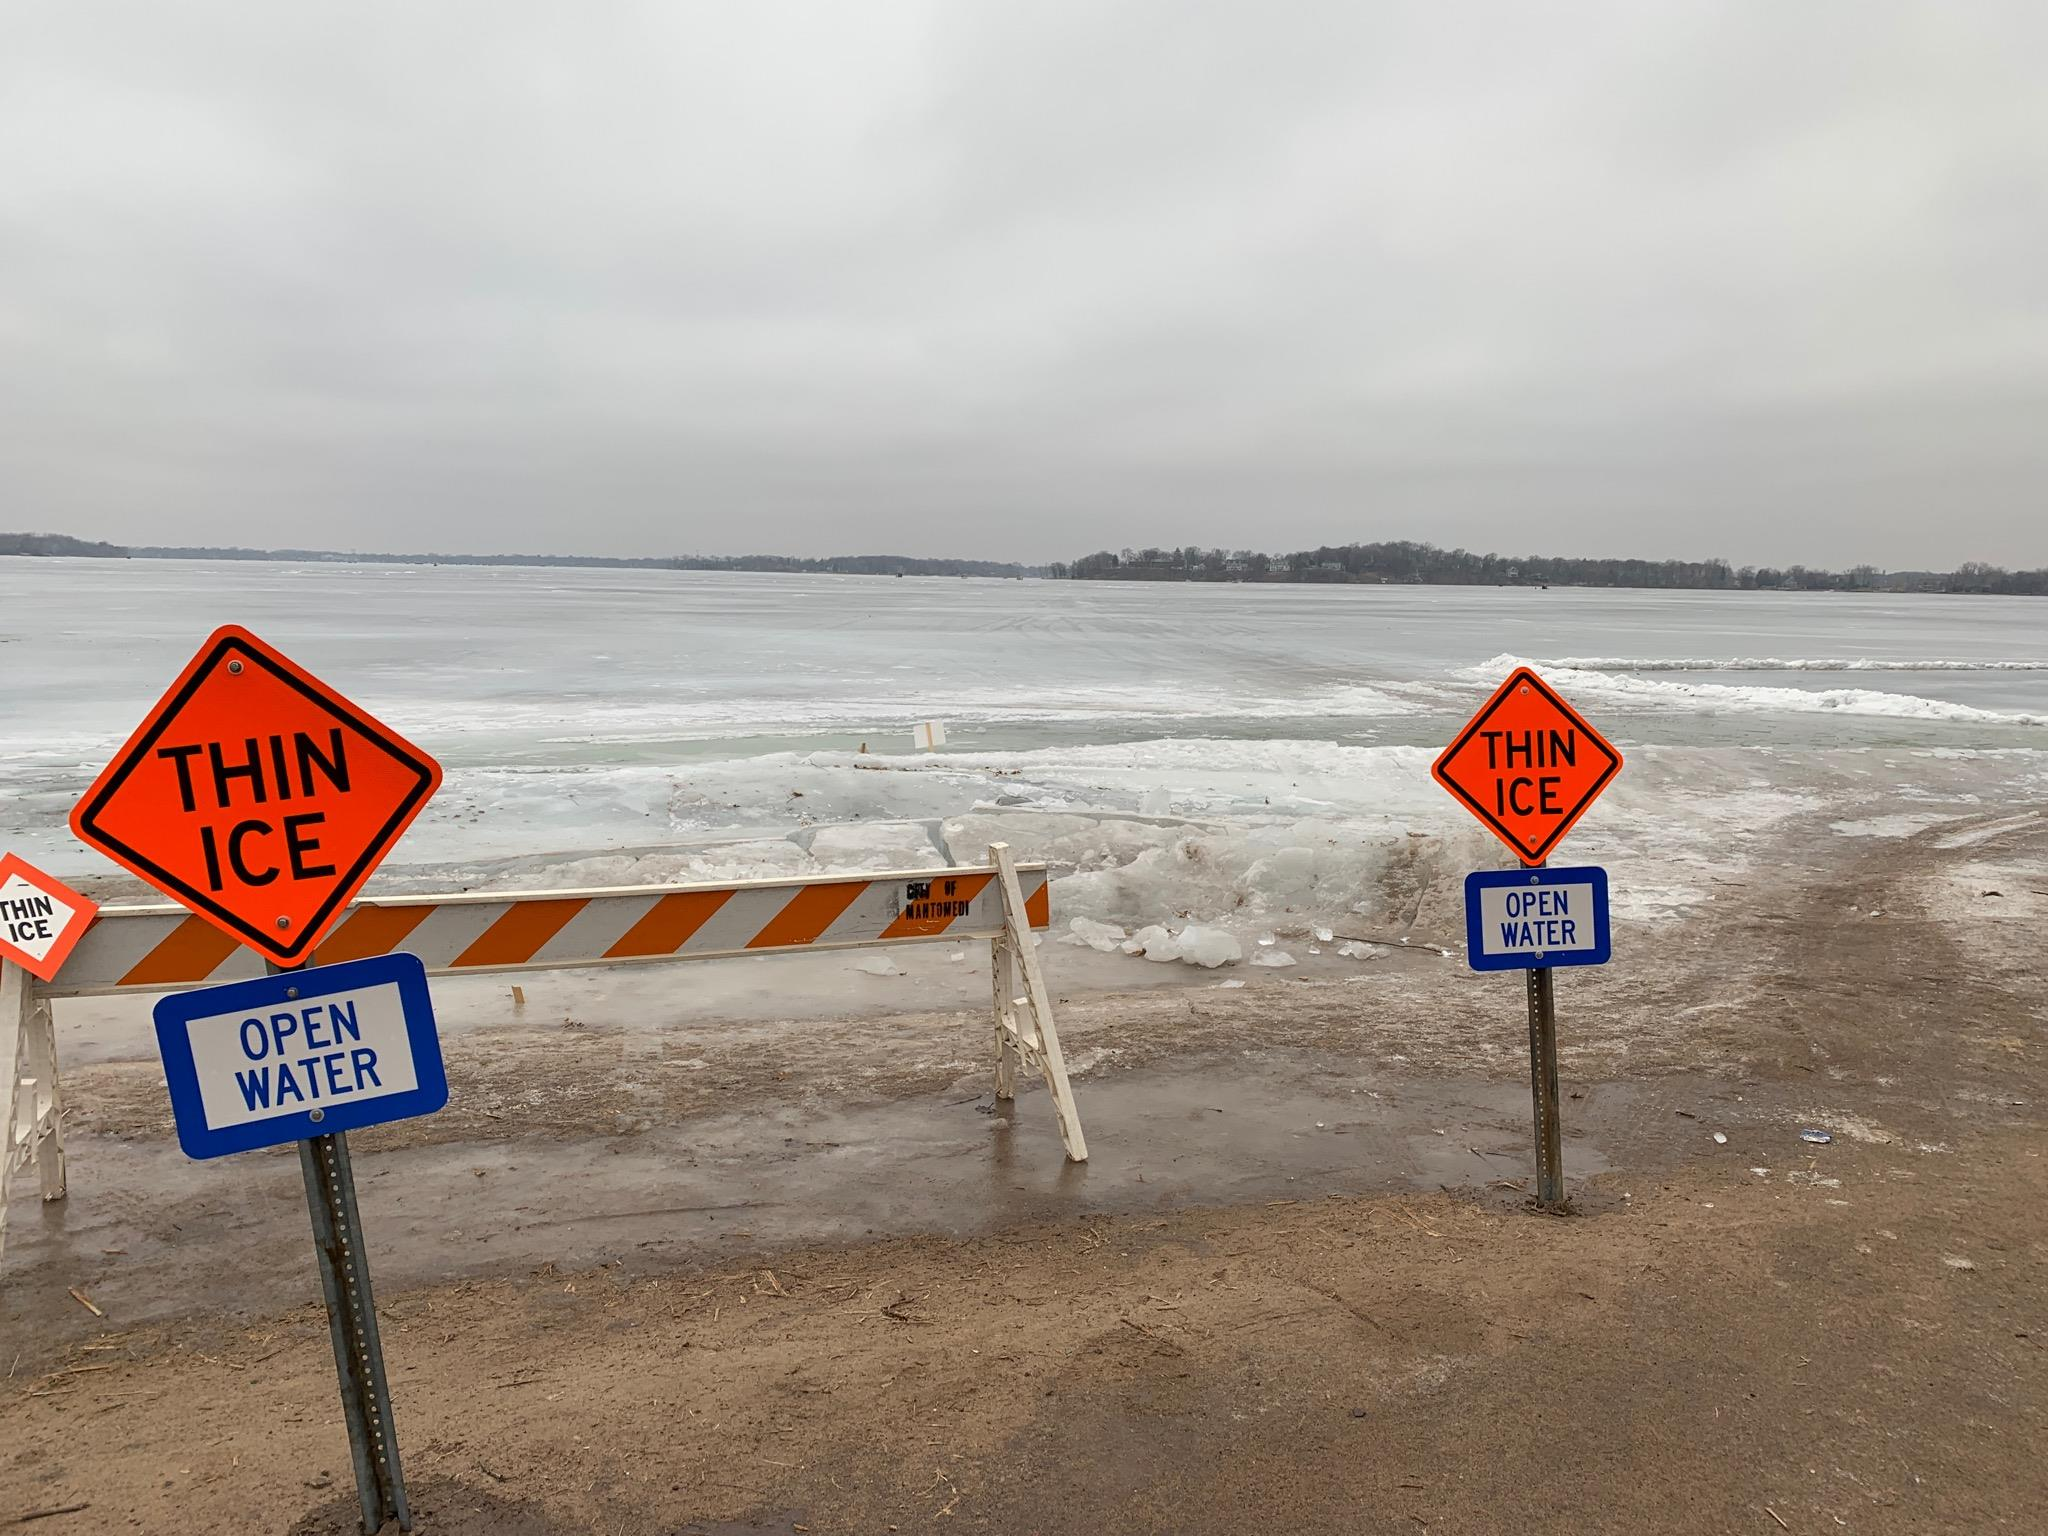 Thin Ice Open Water Signs (IMAGE)